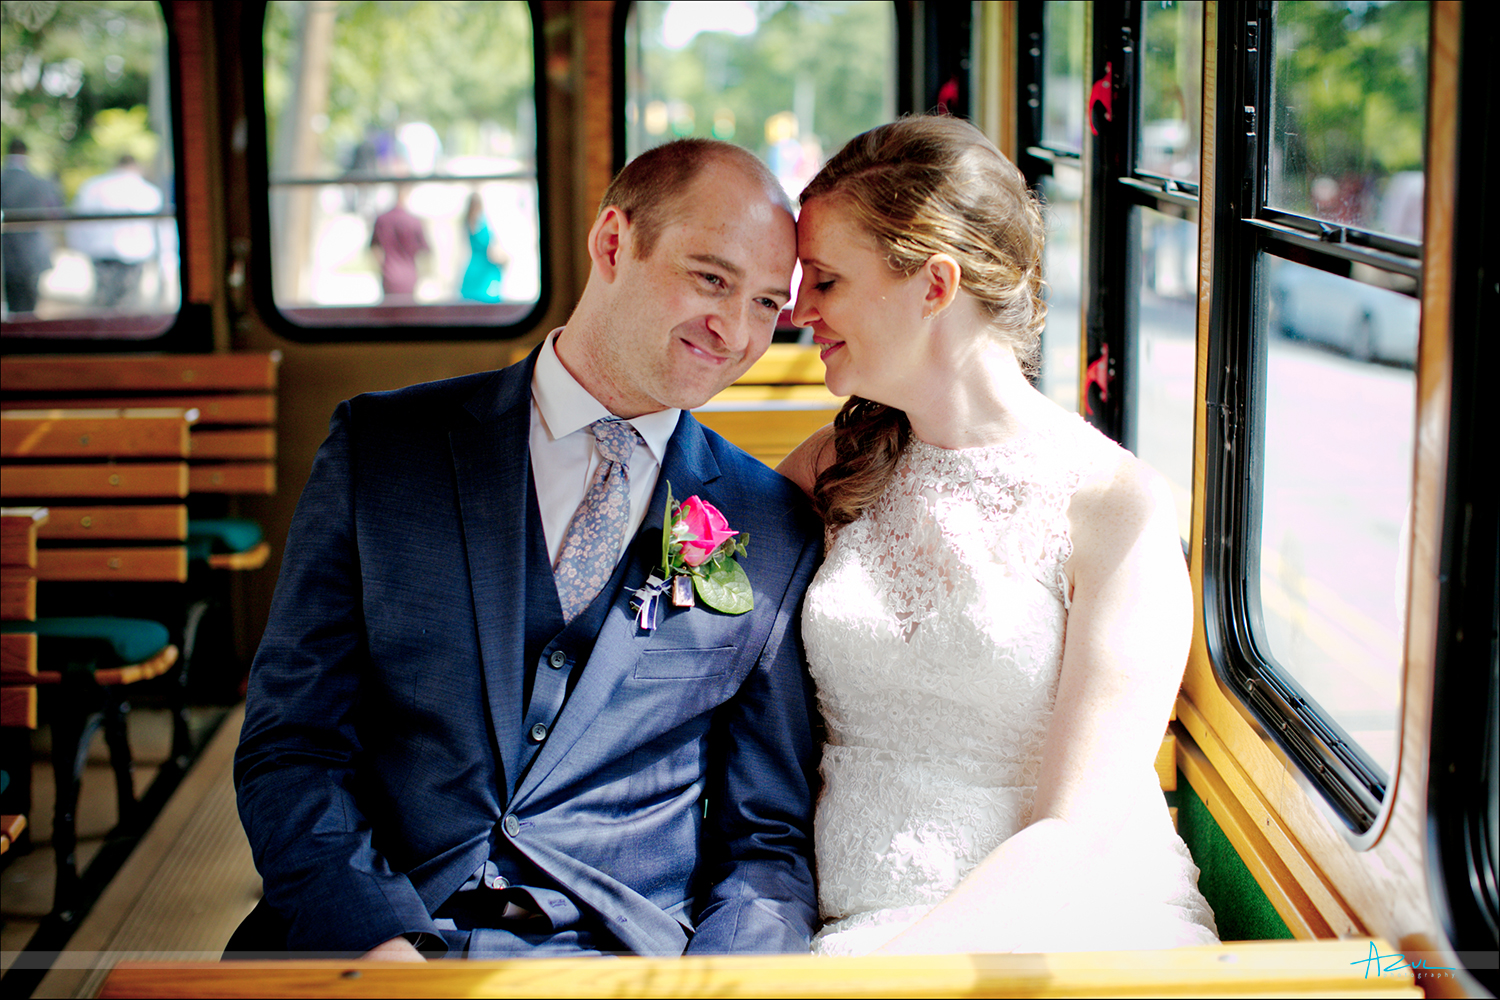 Raleigh wedding trolly is the best and is available for rental for any wedding or occasion.